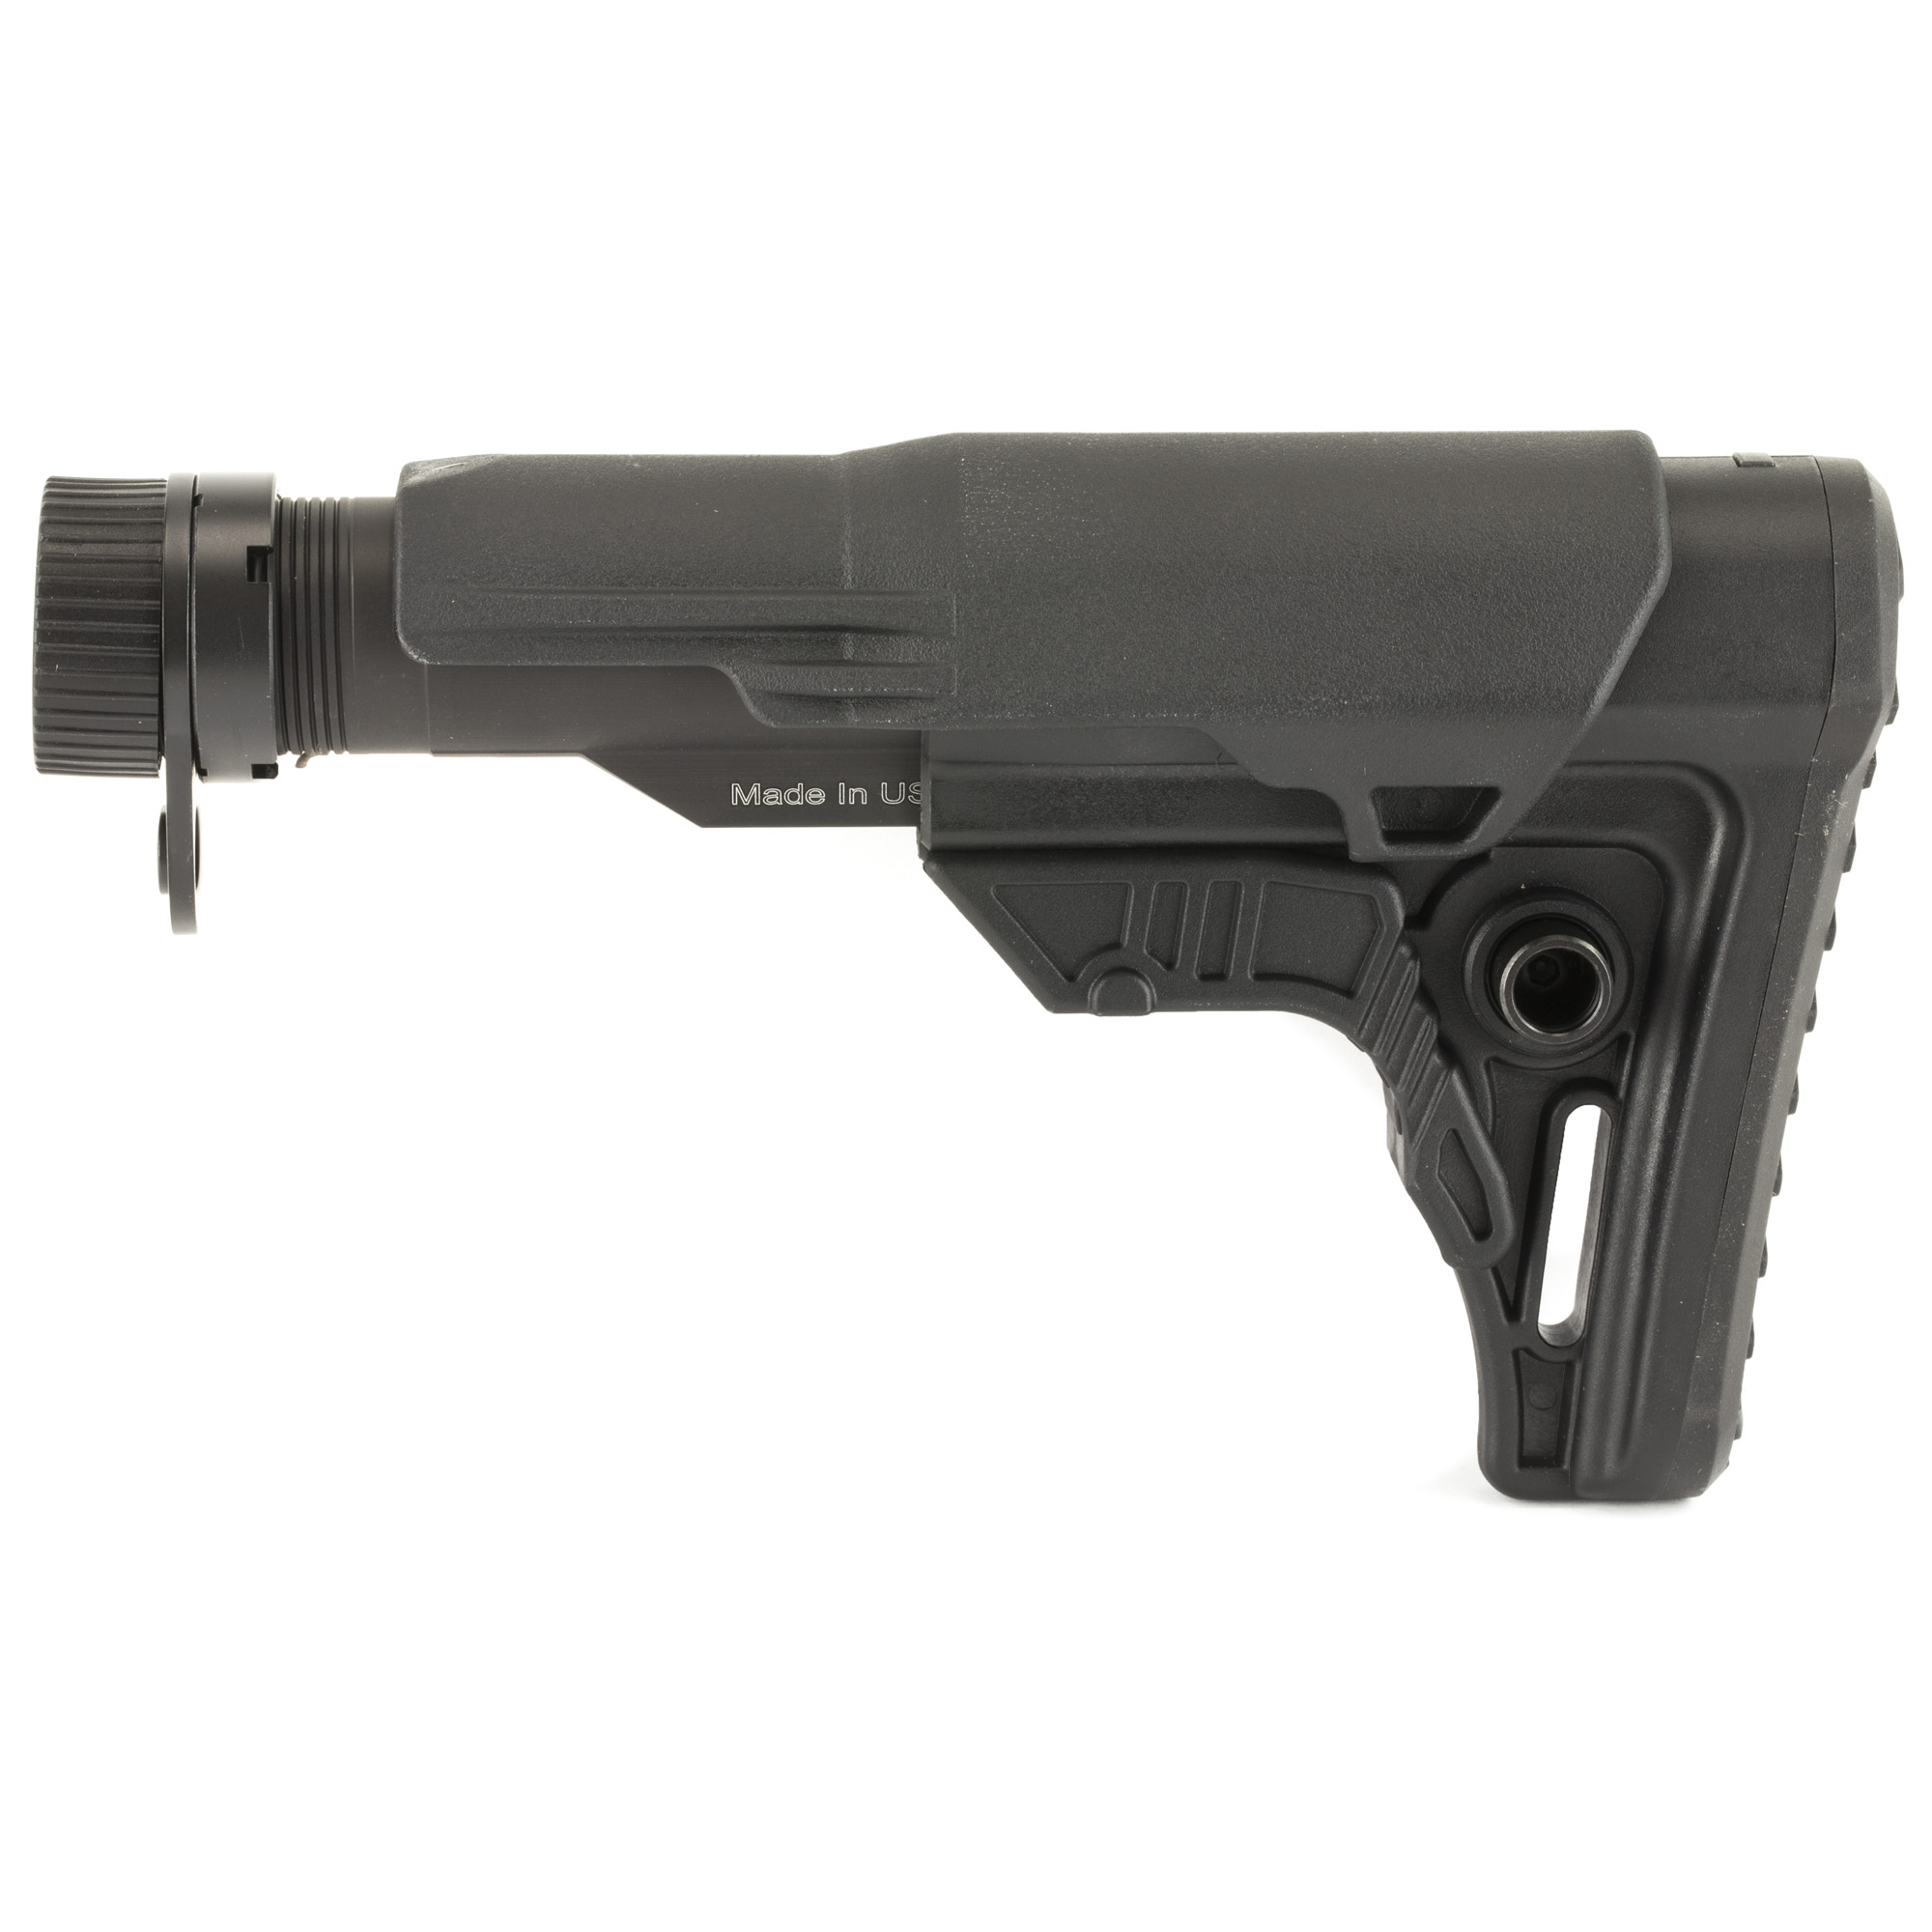 """This is a UTG PRO AR-15 Ops Ready S4 Mil-spec Stock Kit molded from impact resistant high strength matte black polymer. It is complete with Mil-spec extension tube"""" buffer"""" buffer spring"""" receiver end plate"""" and castle nut. Its unique 4.28"""" length with 4 position adjustability provides comfortable length of pull and ease of shouldering firearm when wearing a load bearing vest or plate carrier system. It is built for heavy duty use with the tightest tolerance controls to provide the most secure fit and function."""